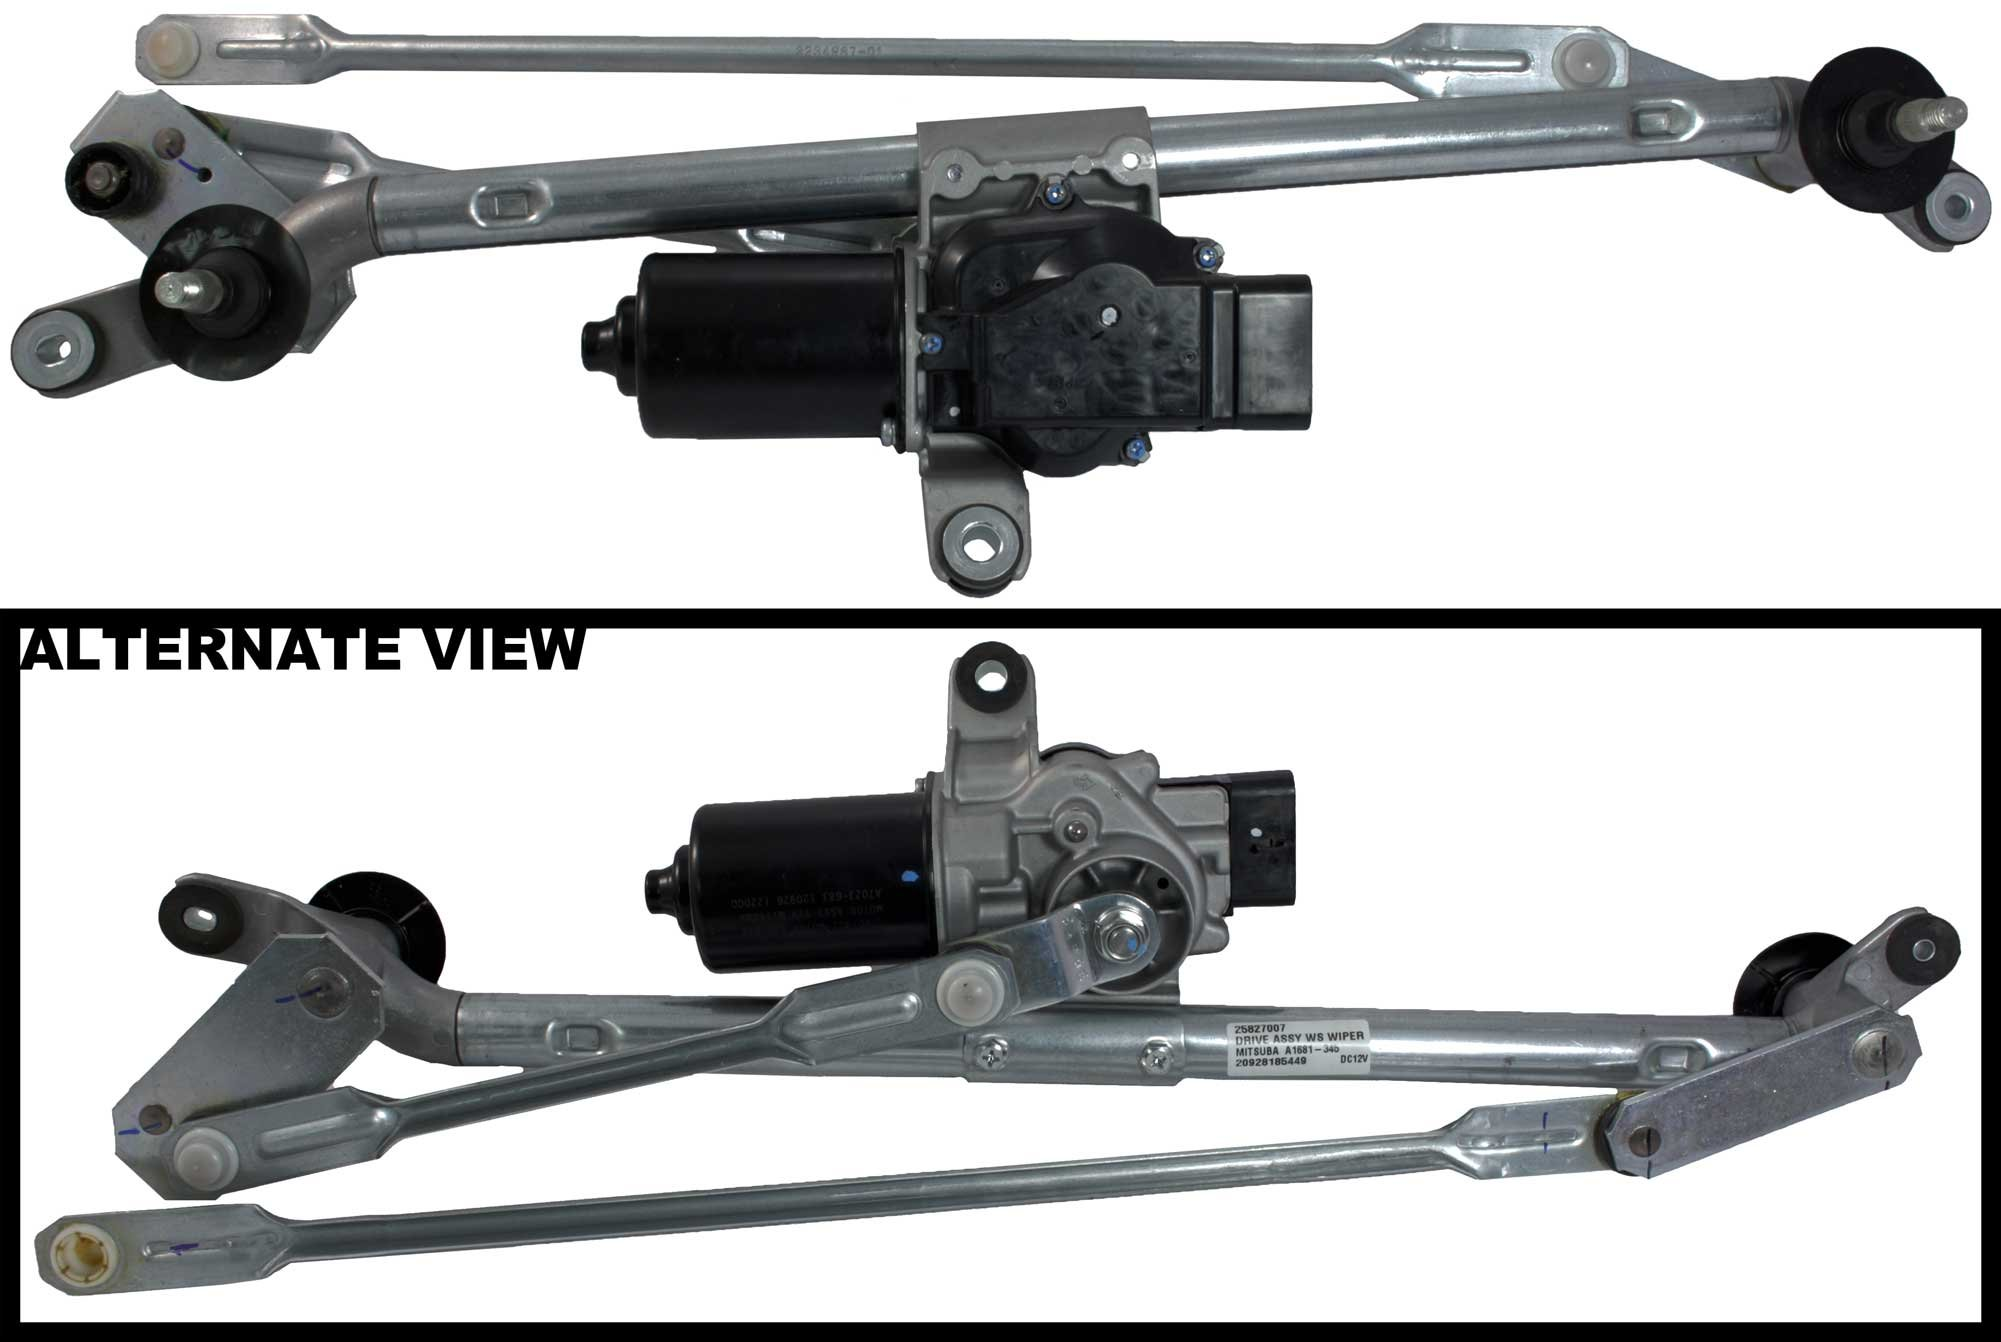 APDTY 22711011 & 22711010 Windshield Wiper Transmission Linkage & Motor Assembly For 2008-2012 Chevy Malibu / 2005-2010 Pontiac G6 / 2007-2009 Saturn Aura (Includes Wiper Intermittent Control) by APDTY